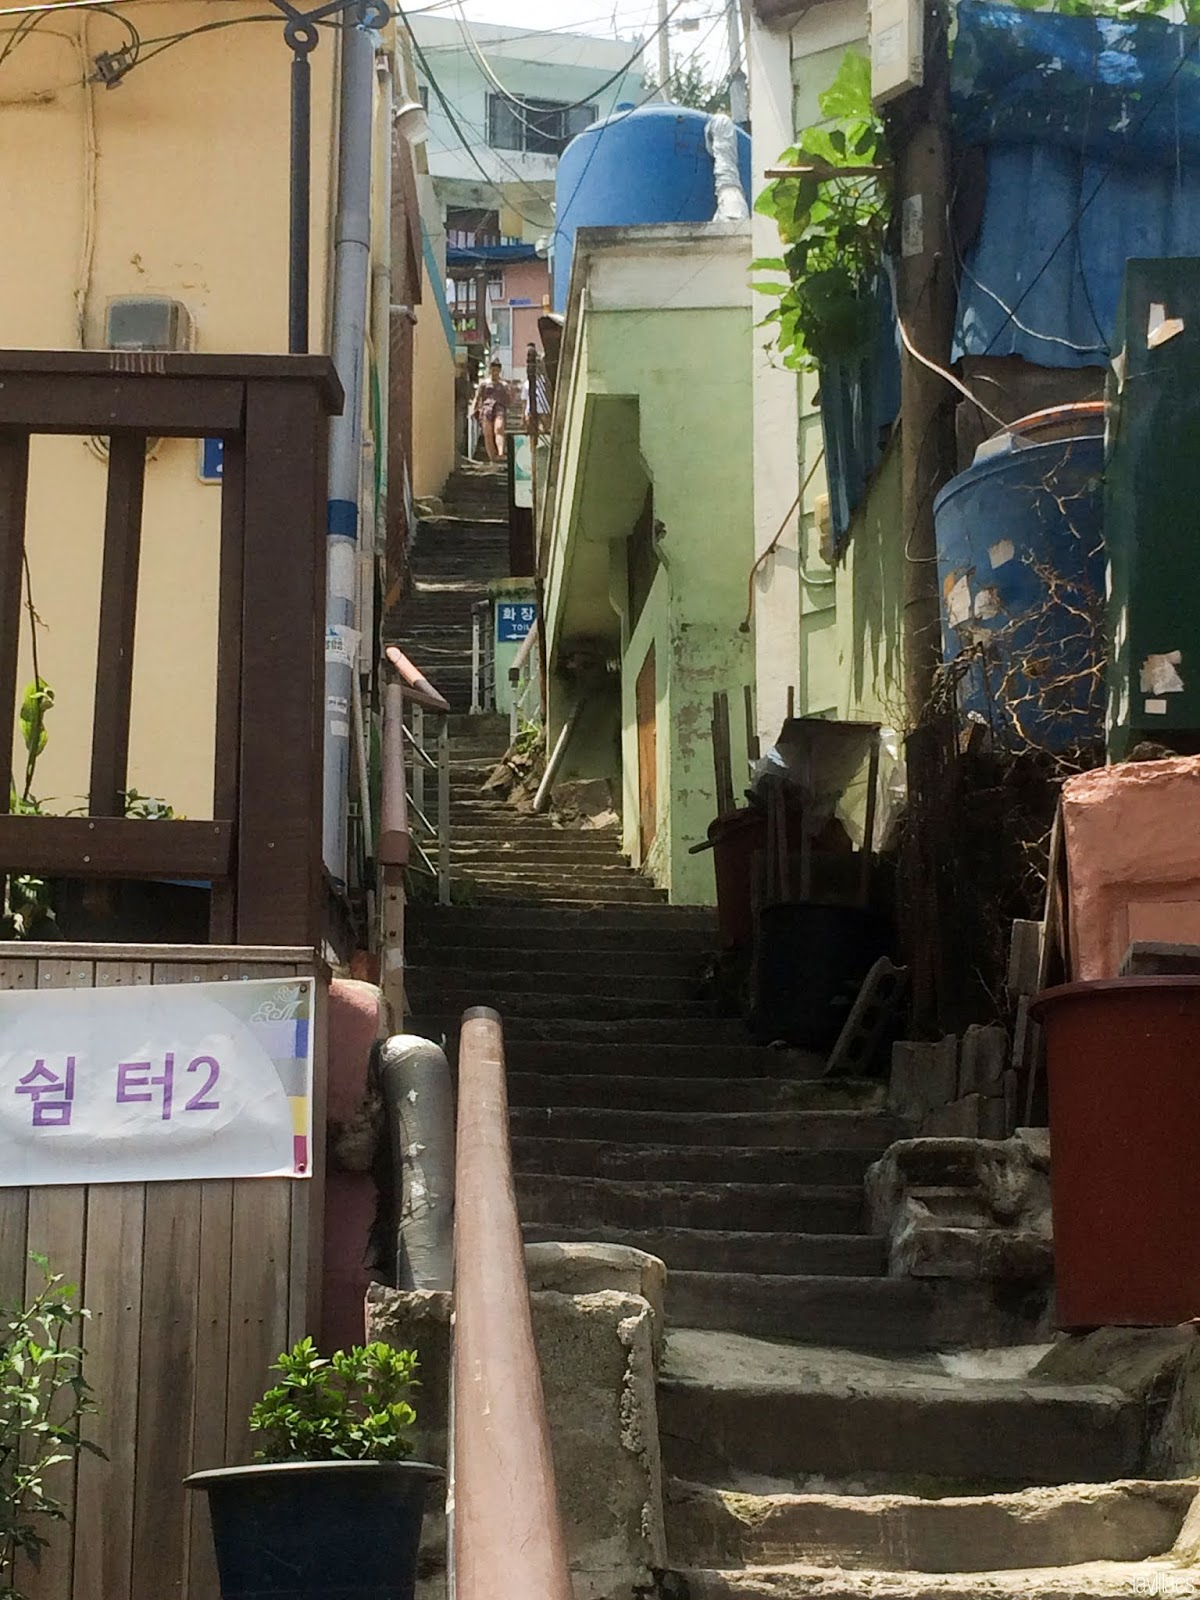 Seoul, Korea - Summer Study Abroad 2014 - Gamcheon Culture Village Stairs to See Stairs